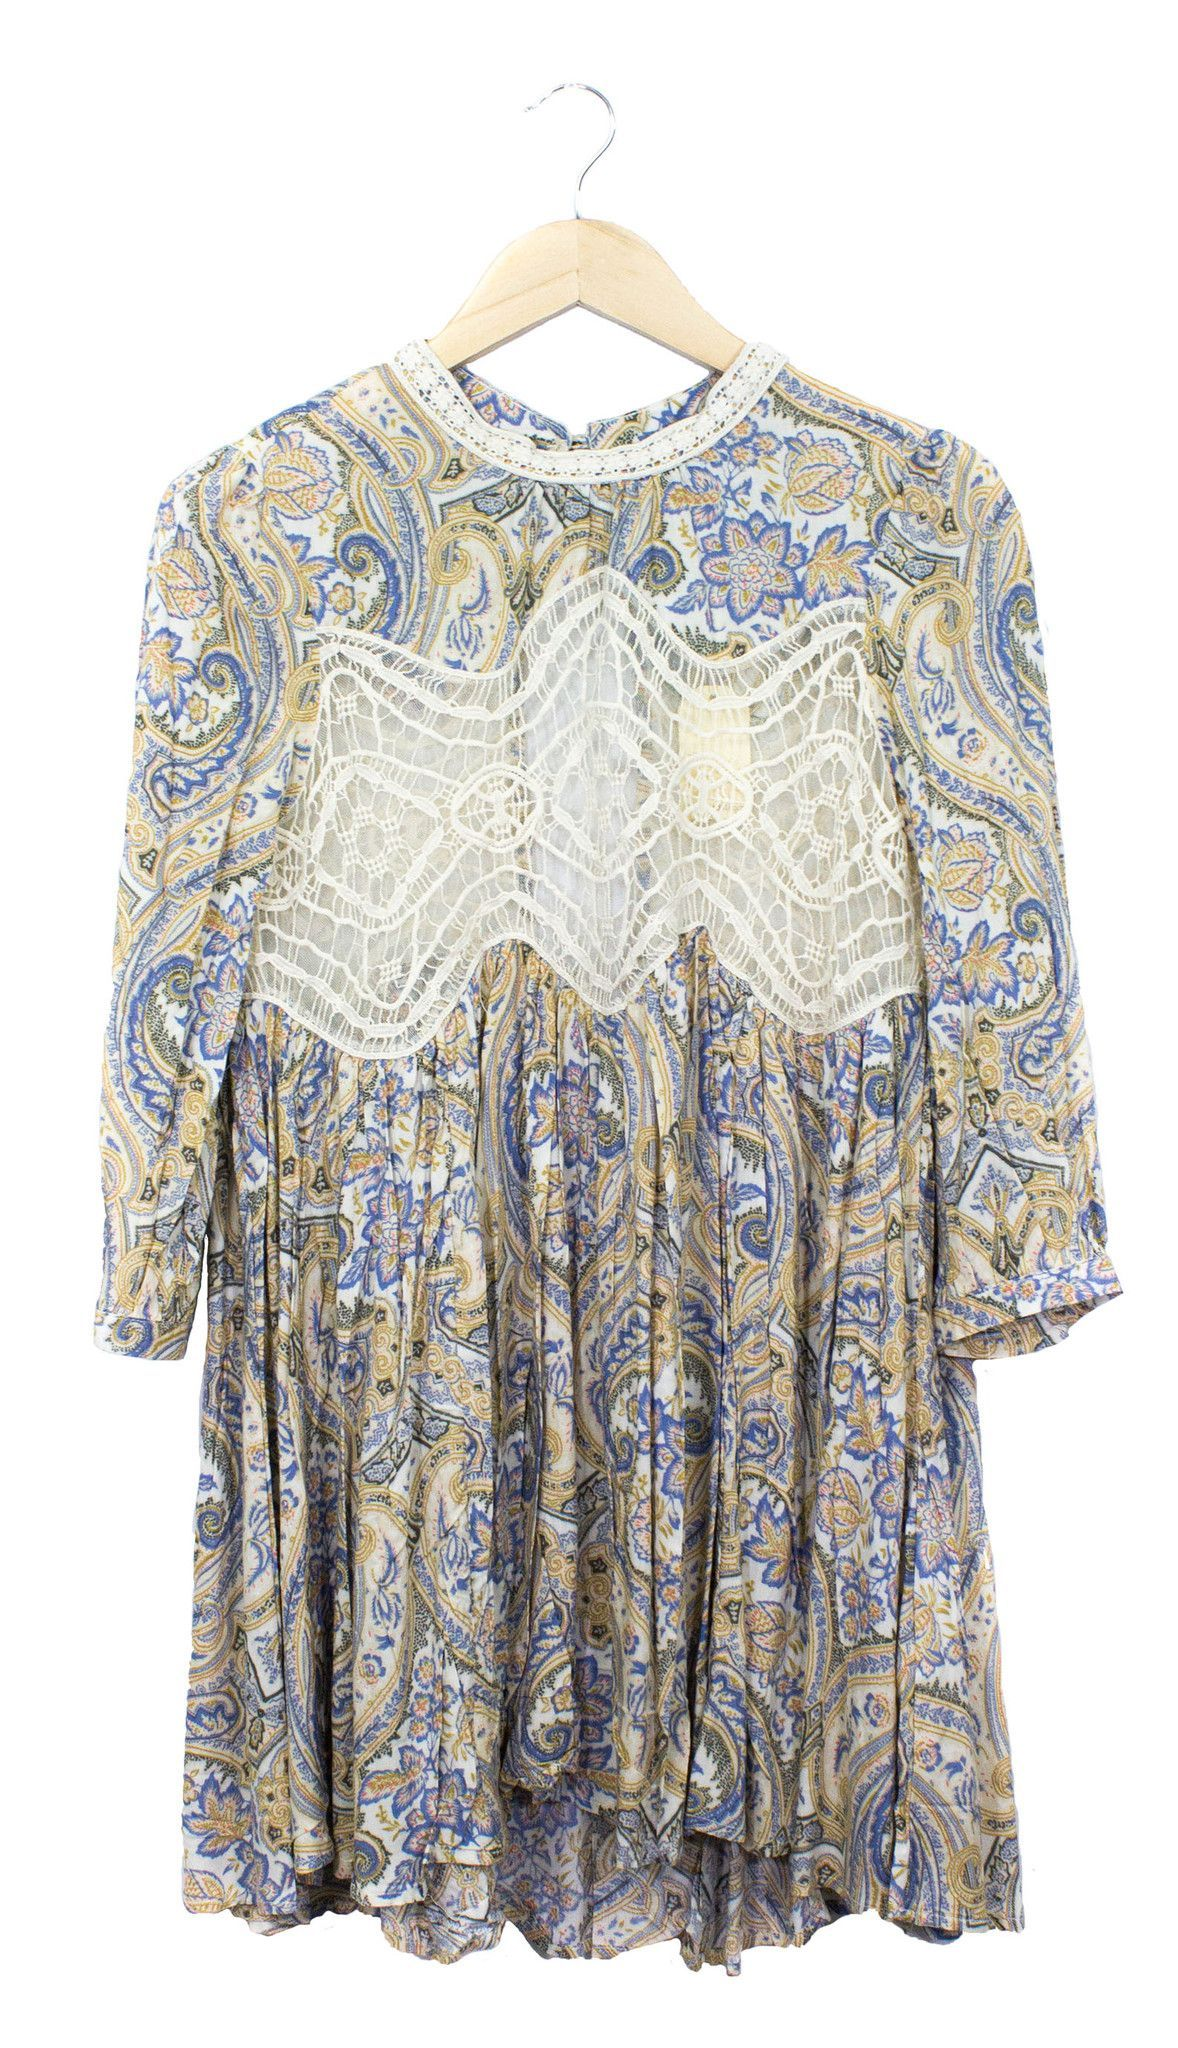 Boho tunic top blouses and dress 4009 trendy boho vintage gypsy - Jodifl Paisley Blue And Cream Lace Tunic